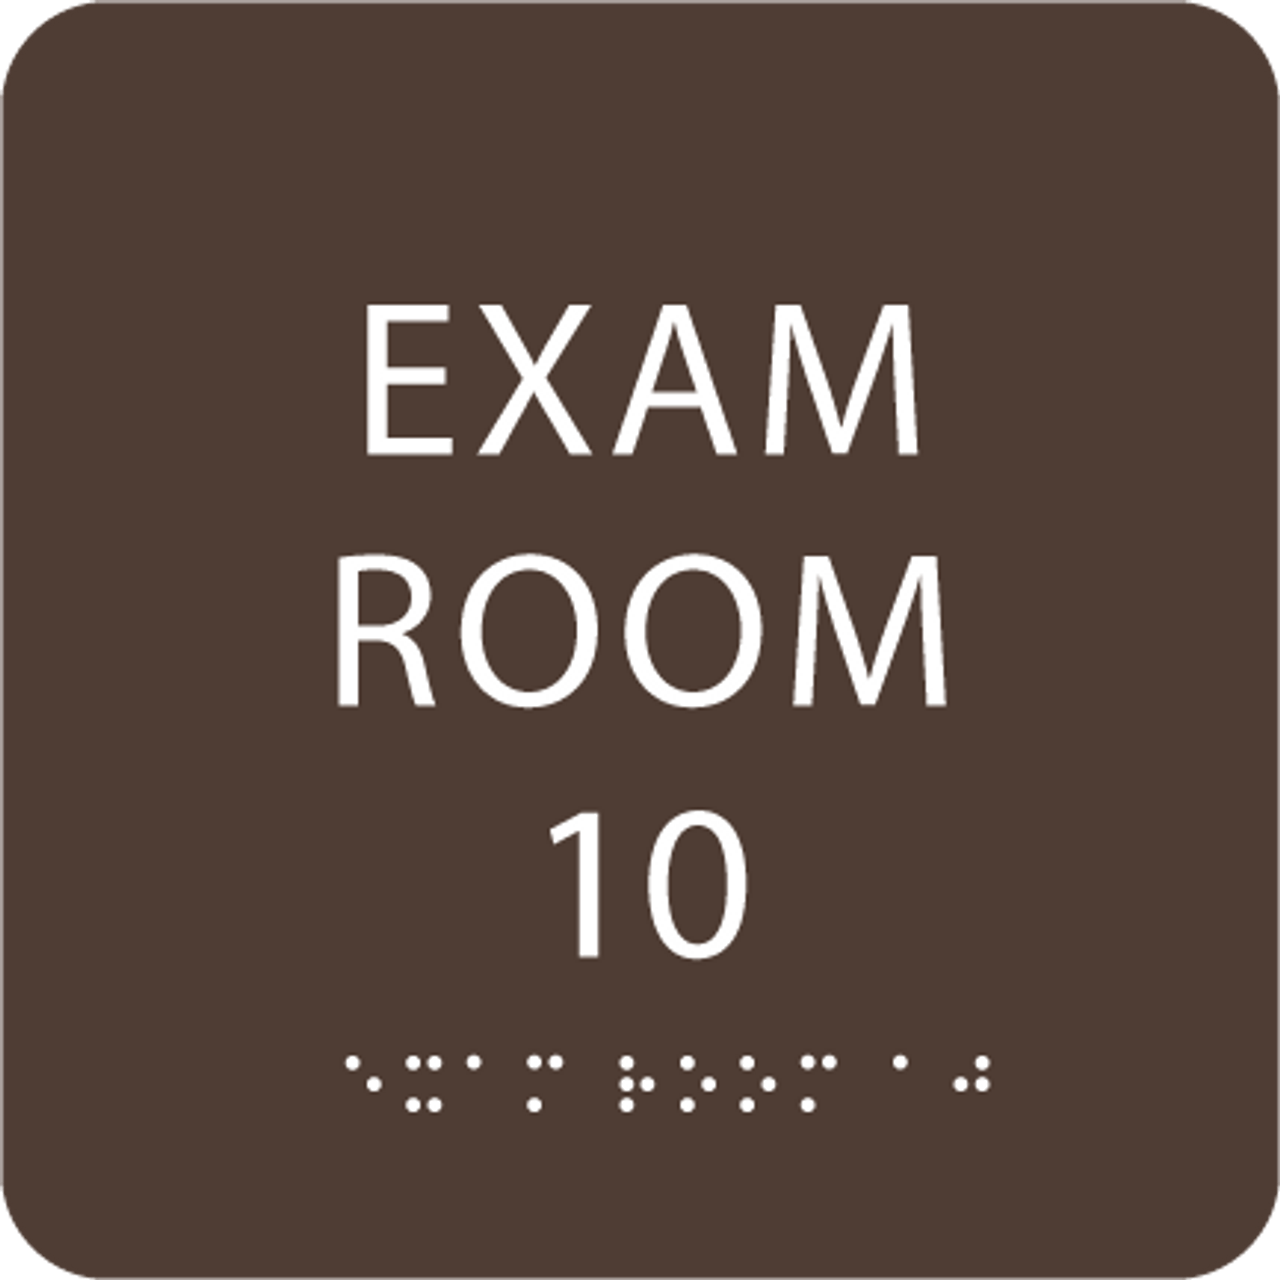 Brown Exam Room 10 Sign w/ ADA Braille